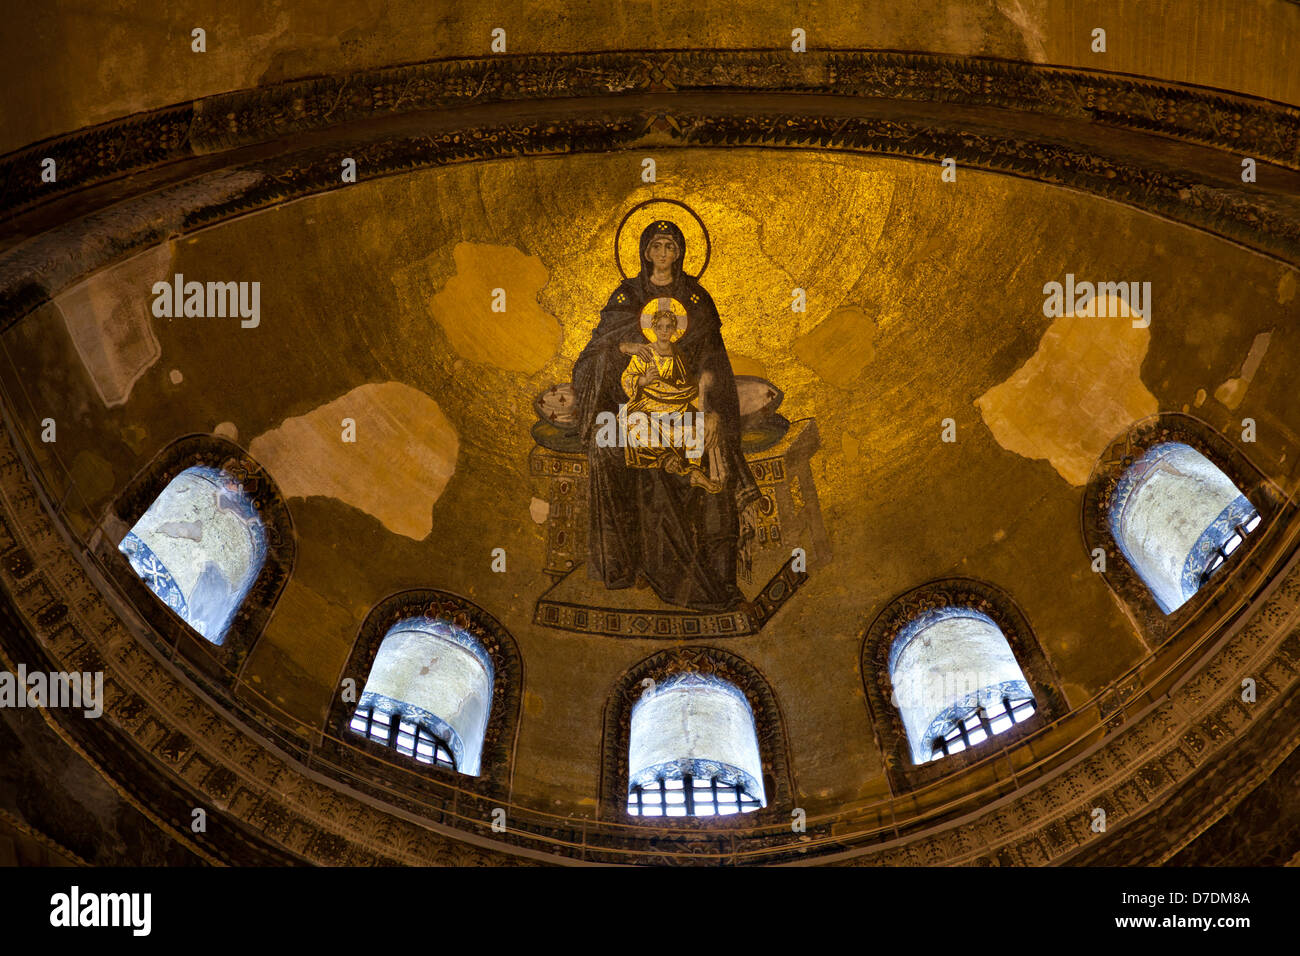 Virgin Mary And Child Christ The Apse Mosaic Hagia Sophia Stock Photo Royalty Free Image